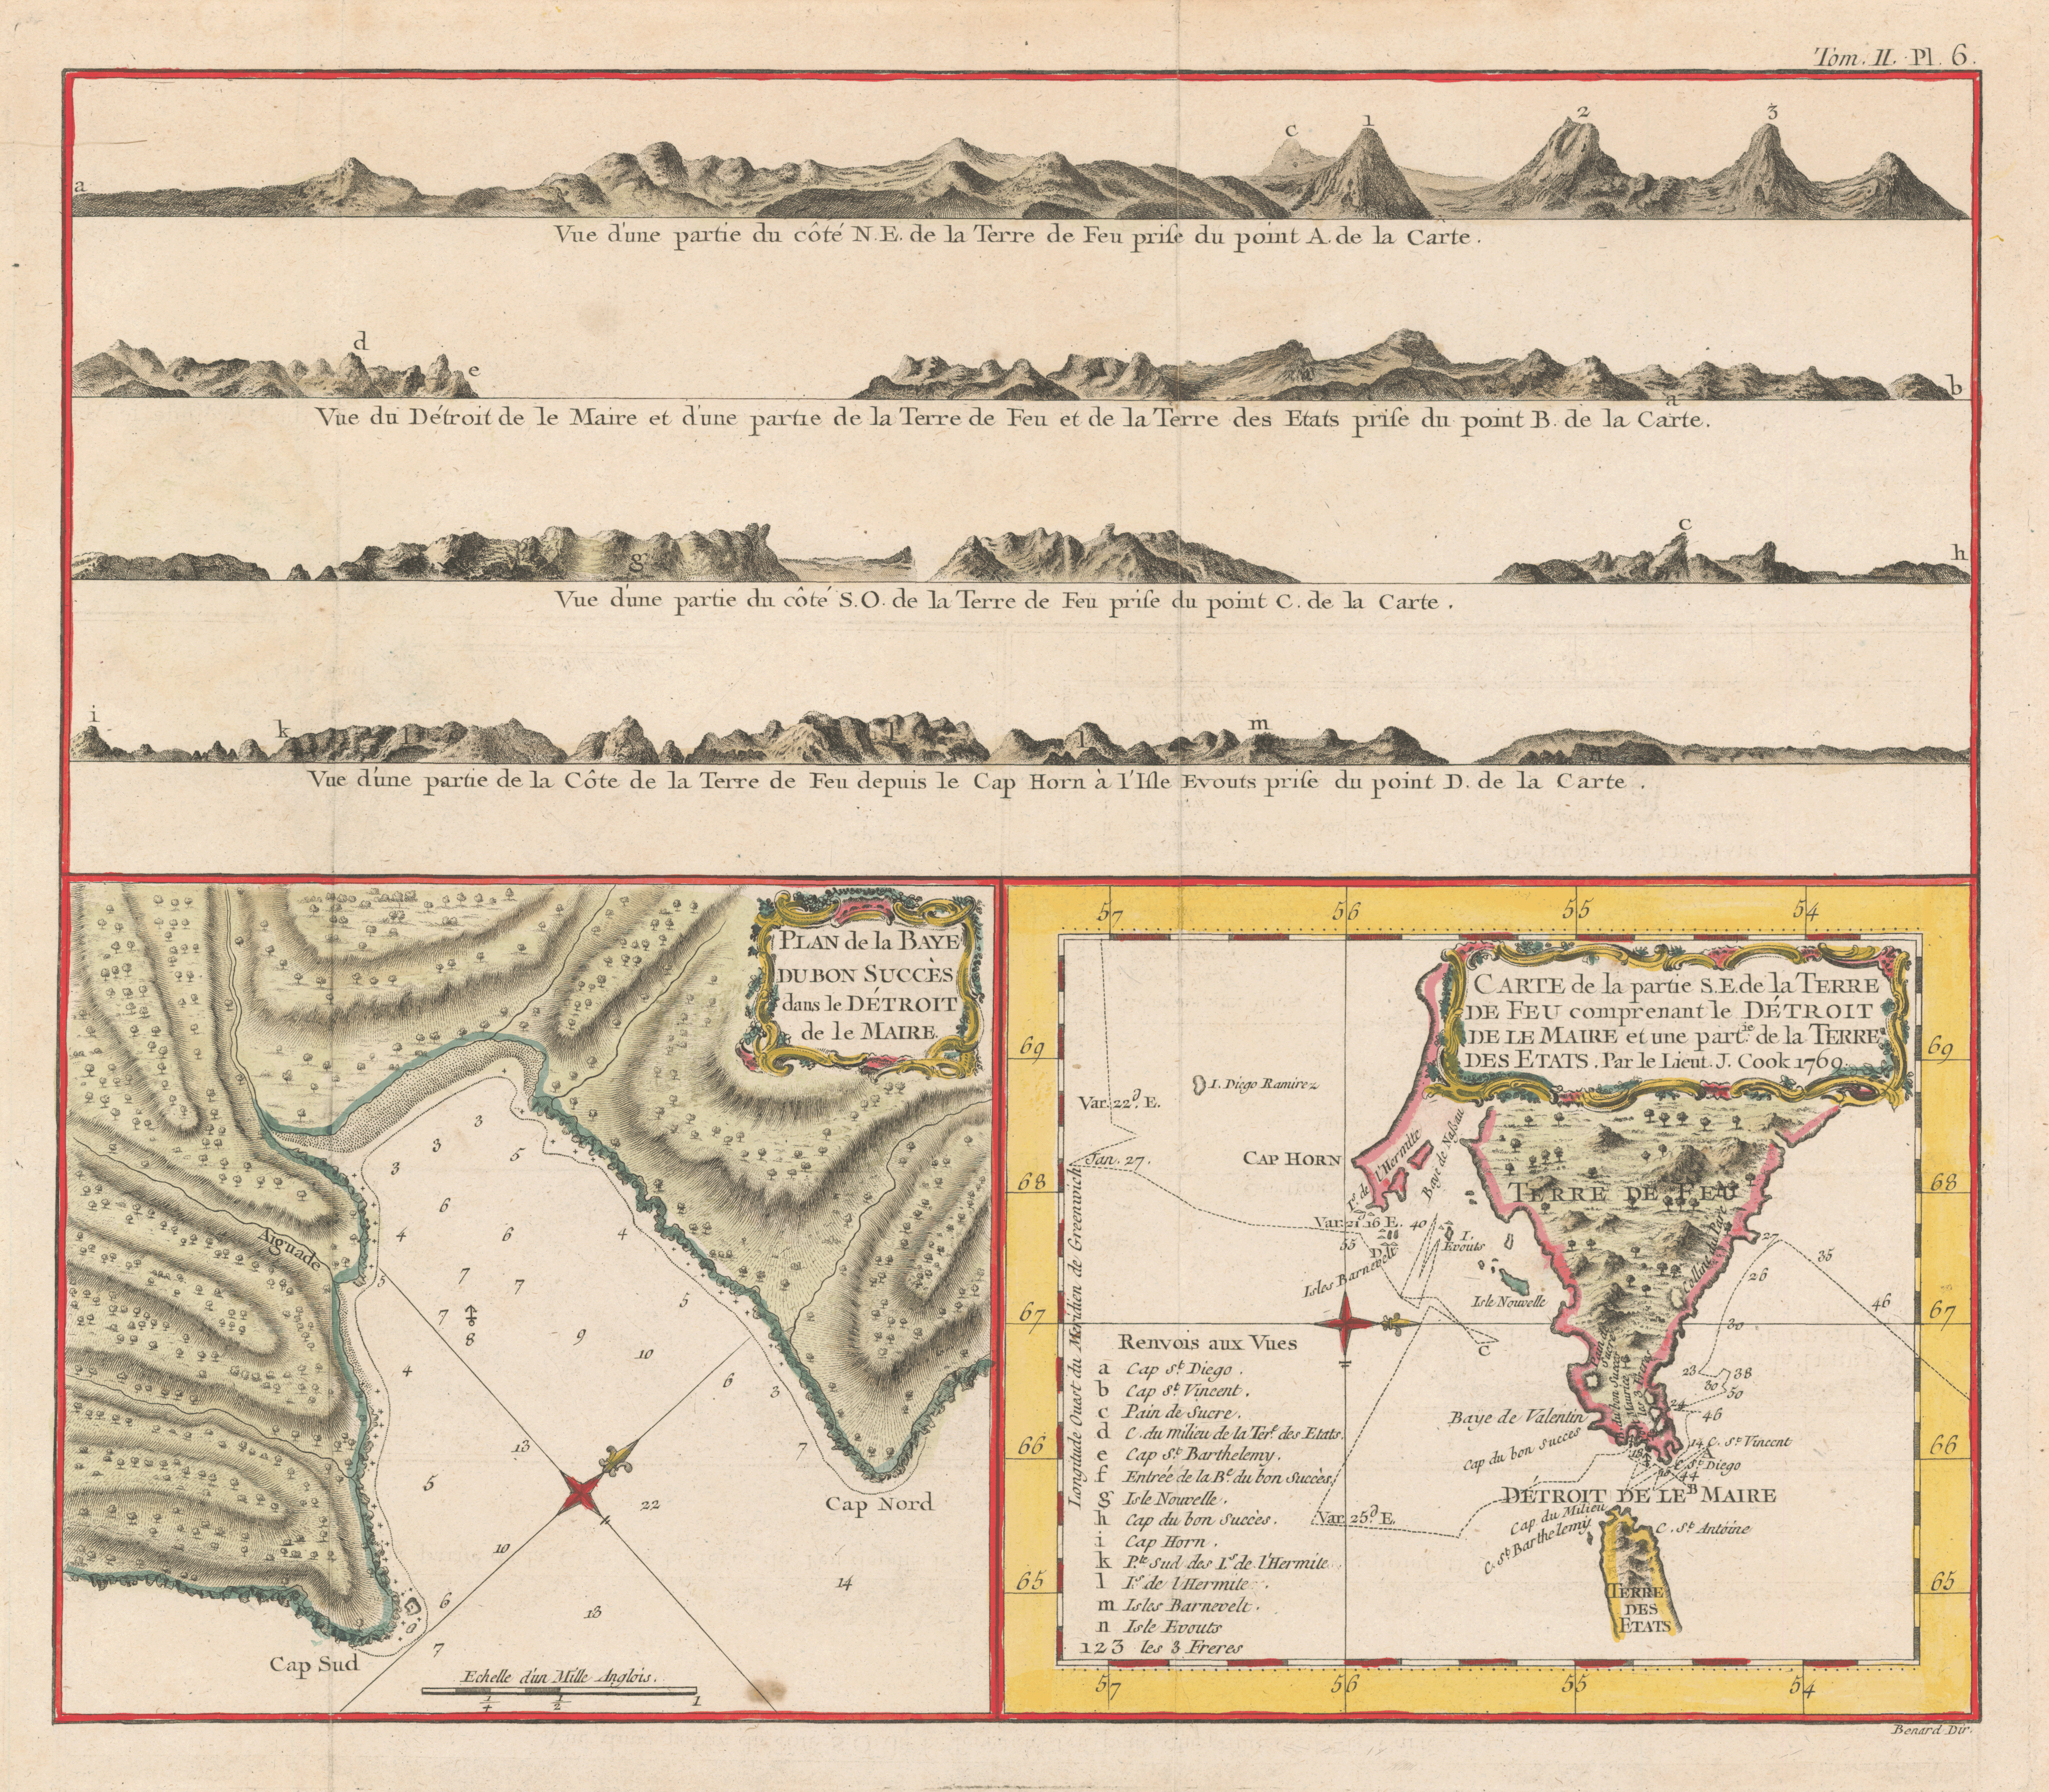 Two copperplate maps, with added color, showing Cook's passage by Cape Horn and the Bay of Success, where Banks's servants died. From the French edition of John Hawkesworth's account of the voyage (Paris, 1774).